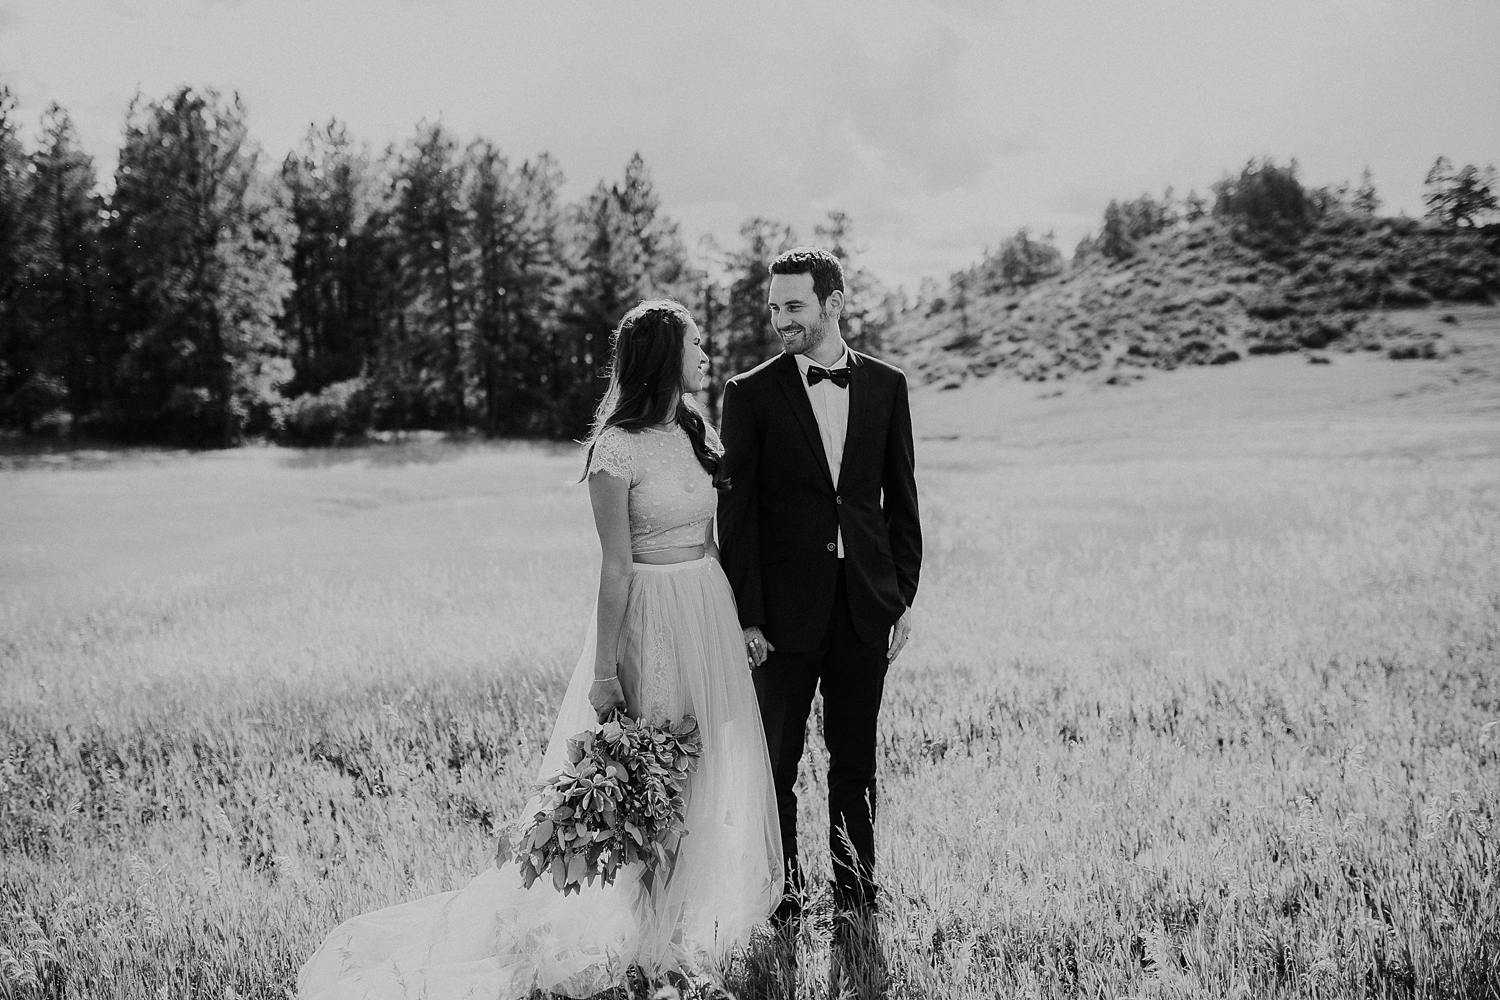 Alicia+lucia+photography+-+albuquerque+wedding+photographer+-+santa+fe+wedding+photography+-+new+mexico+wedding+photographer+-+pagosa+springs+wedding+-+destination+wedding_0039.jpg